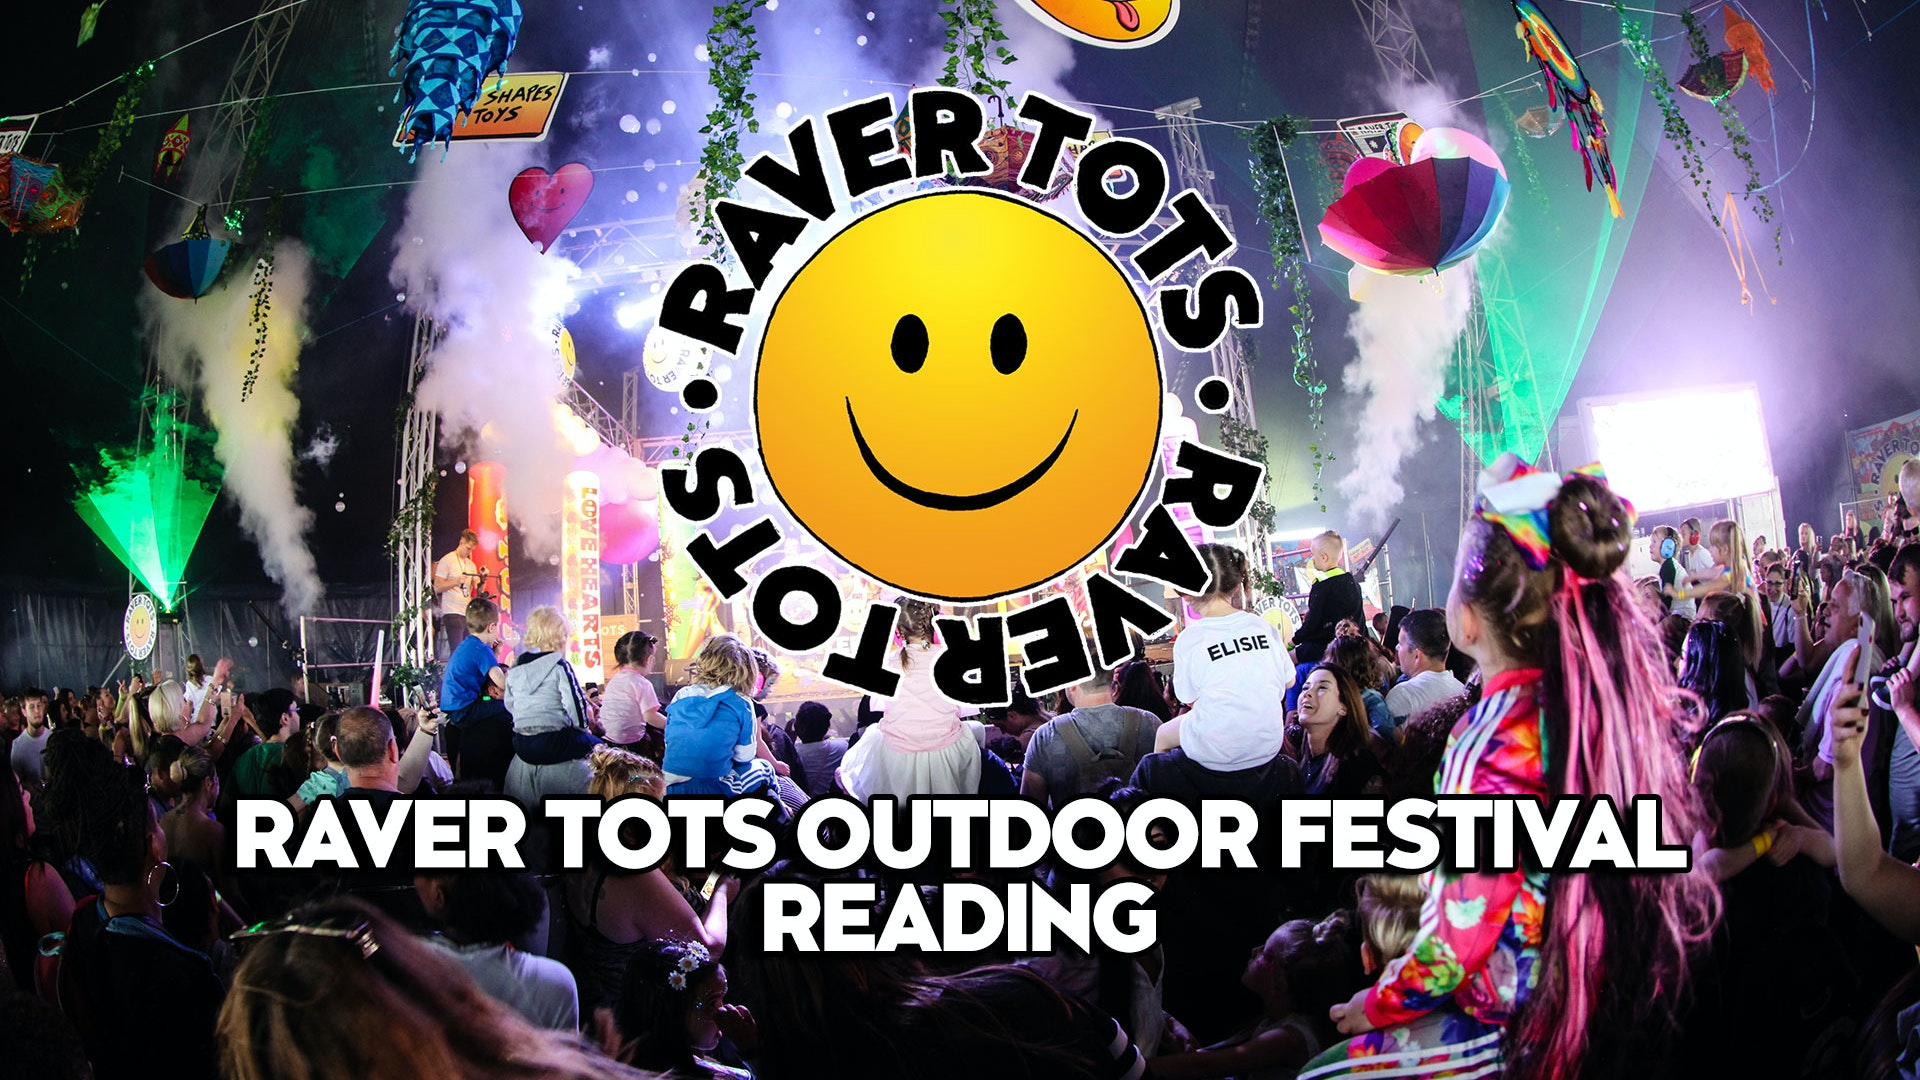 Raver Tots Outdoor Festival Reading 2020